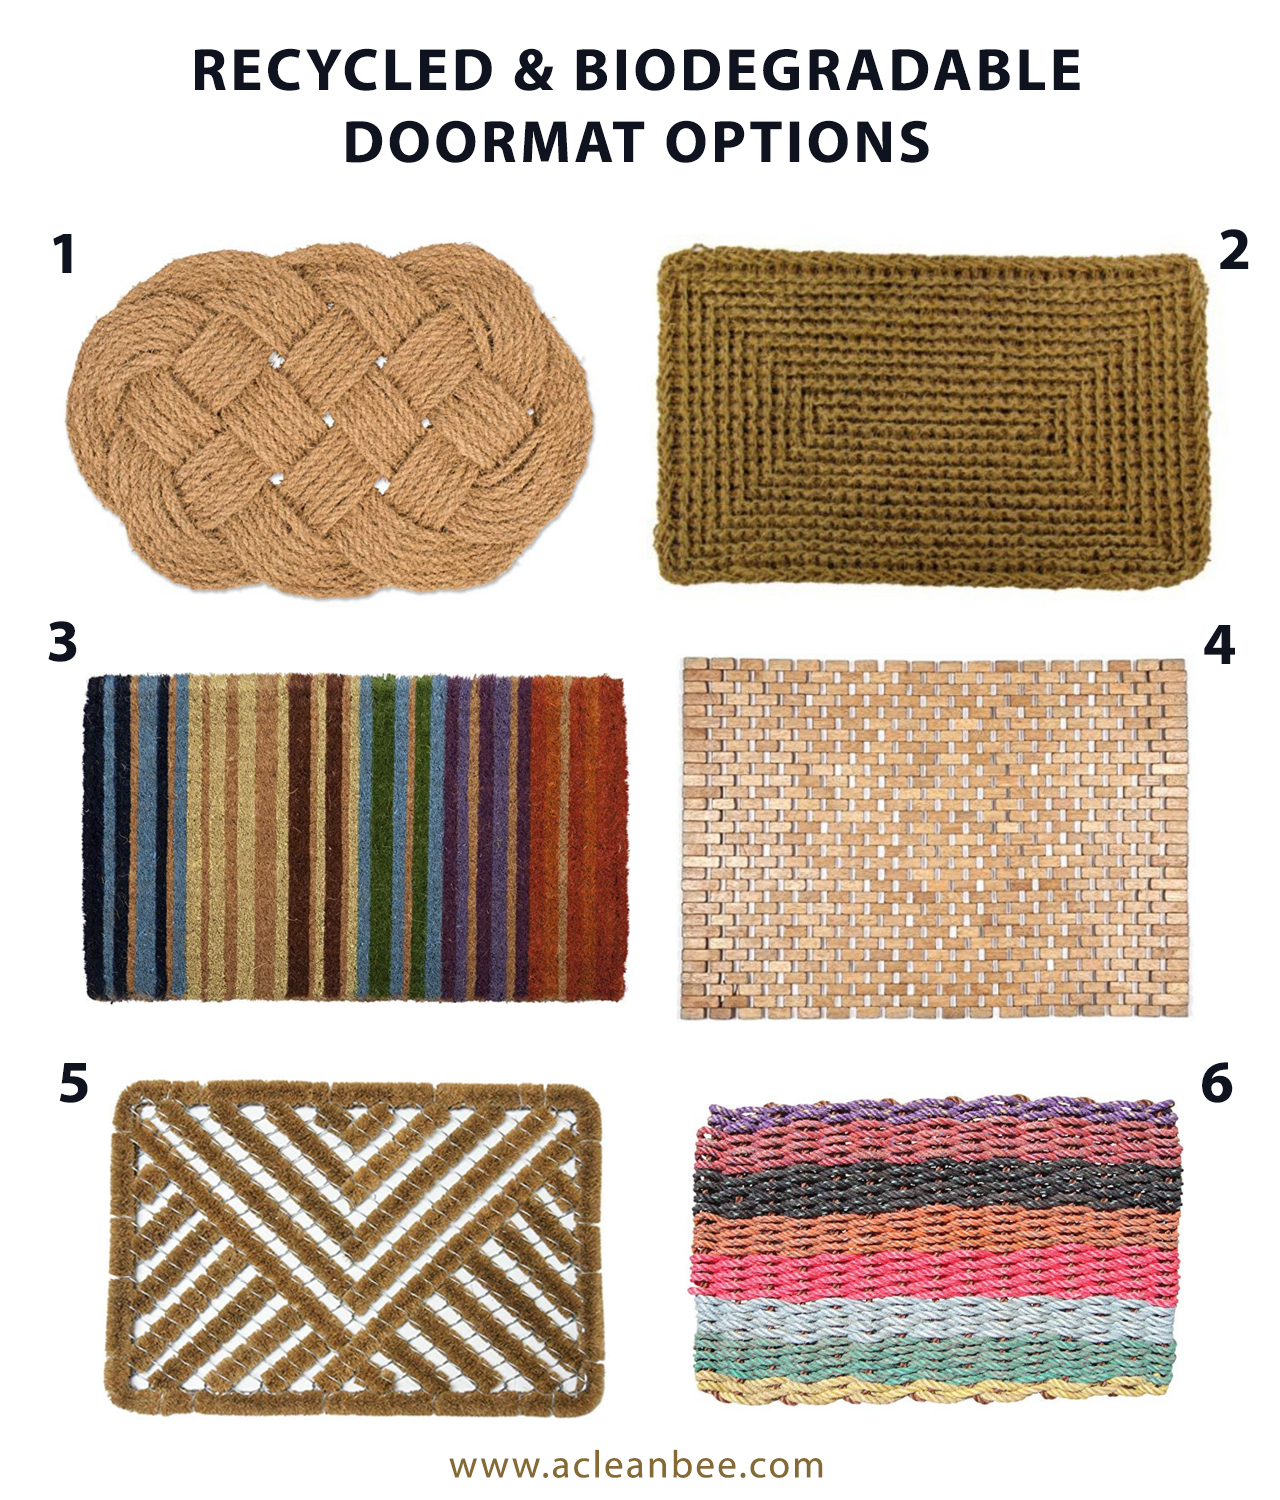 Recycled and biodegradable doormat options